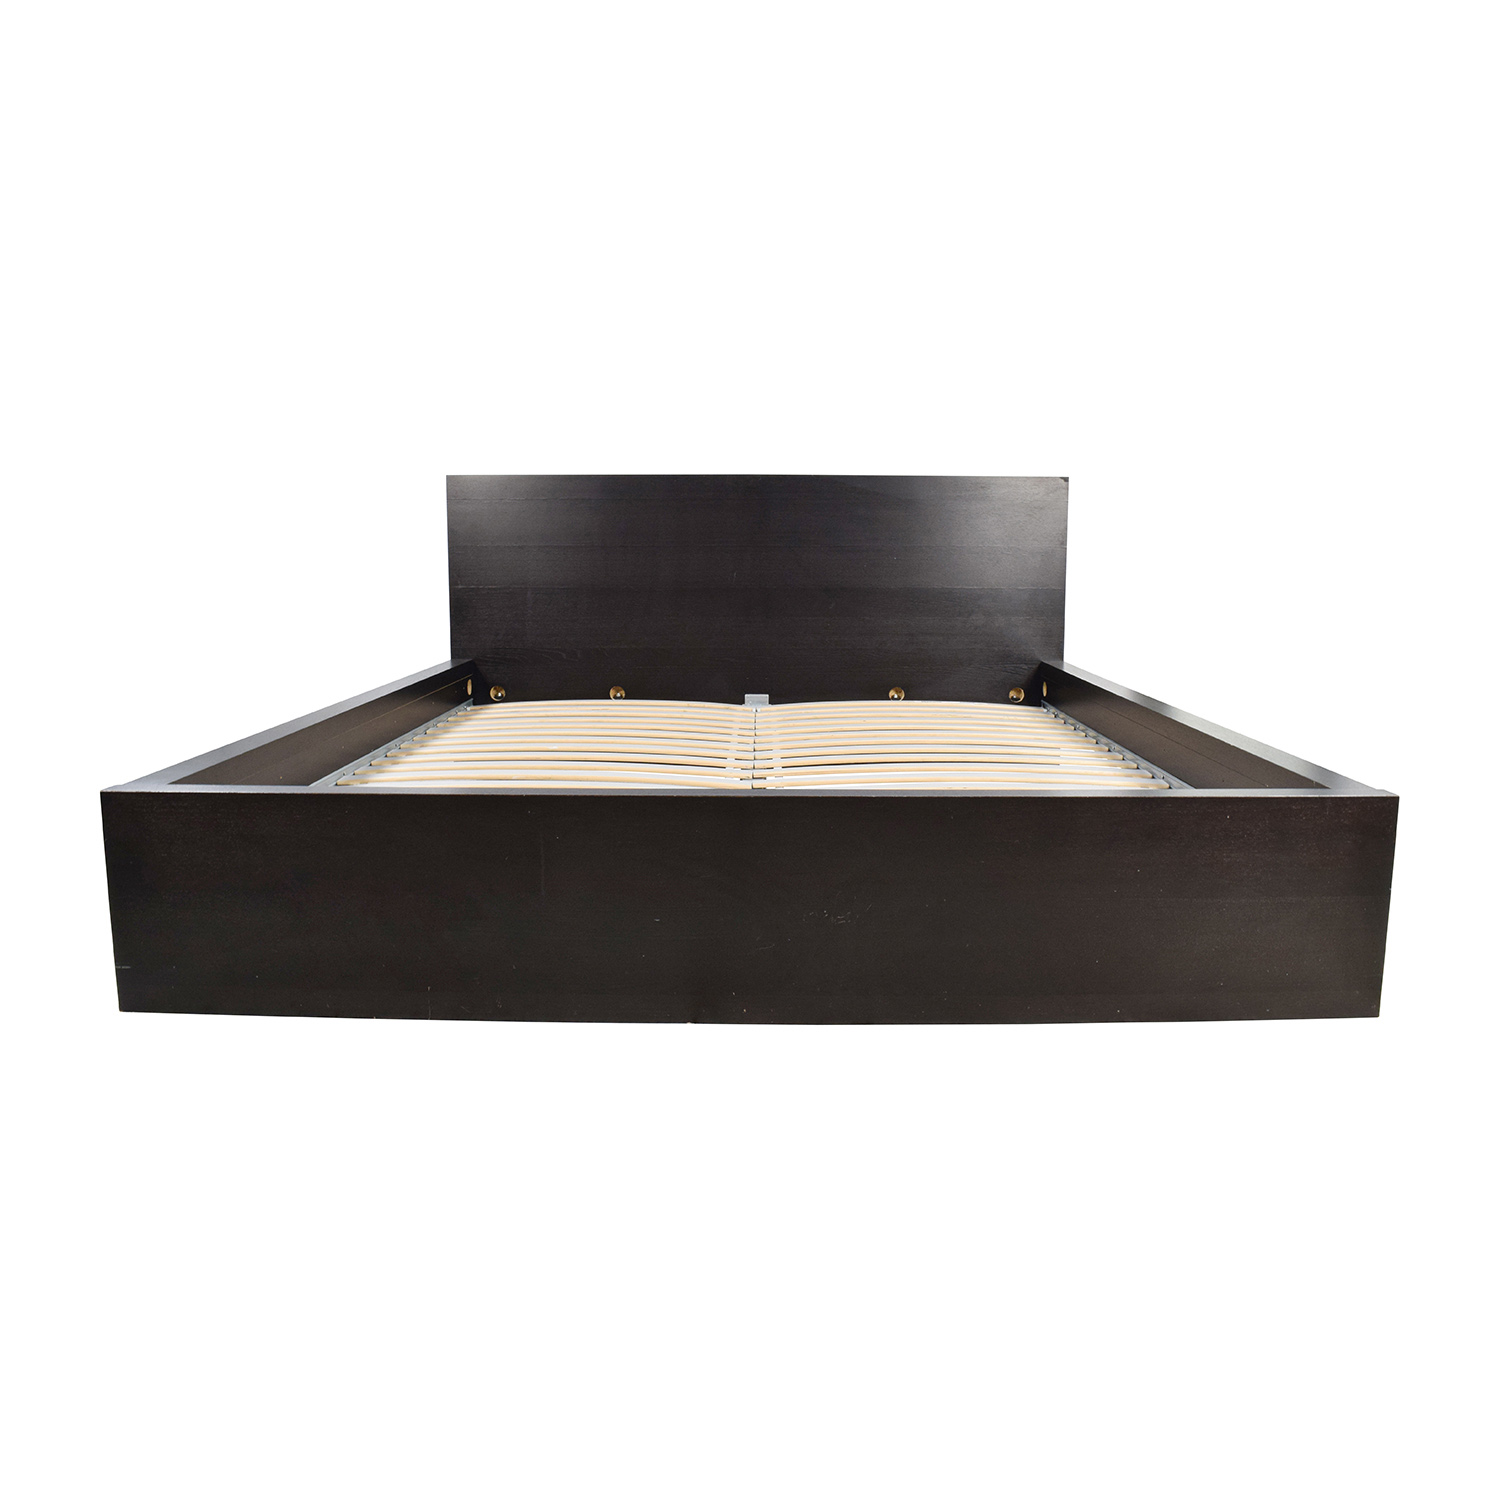 IKEA IKEA Malm King Bed Frame on sale